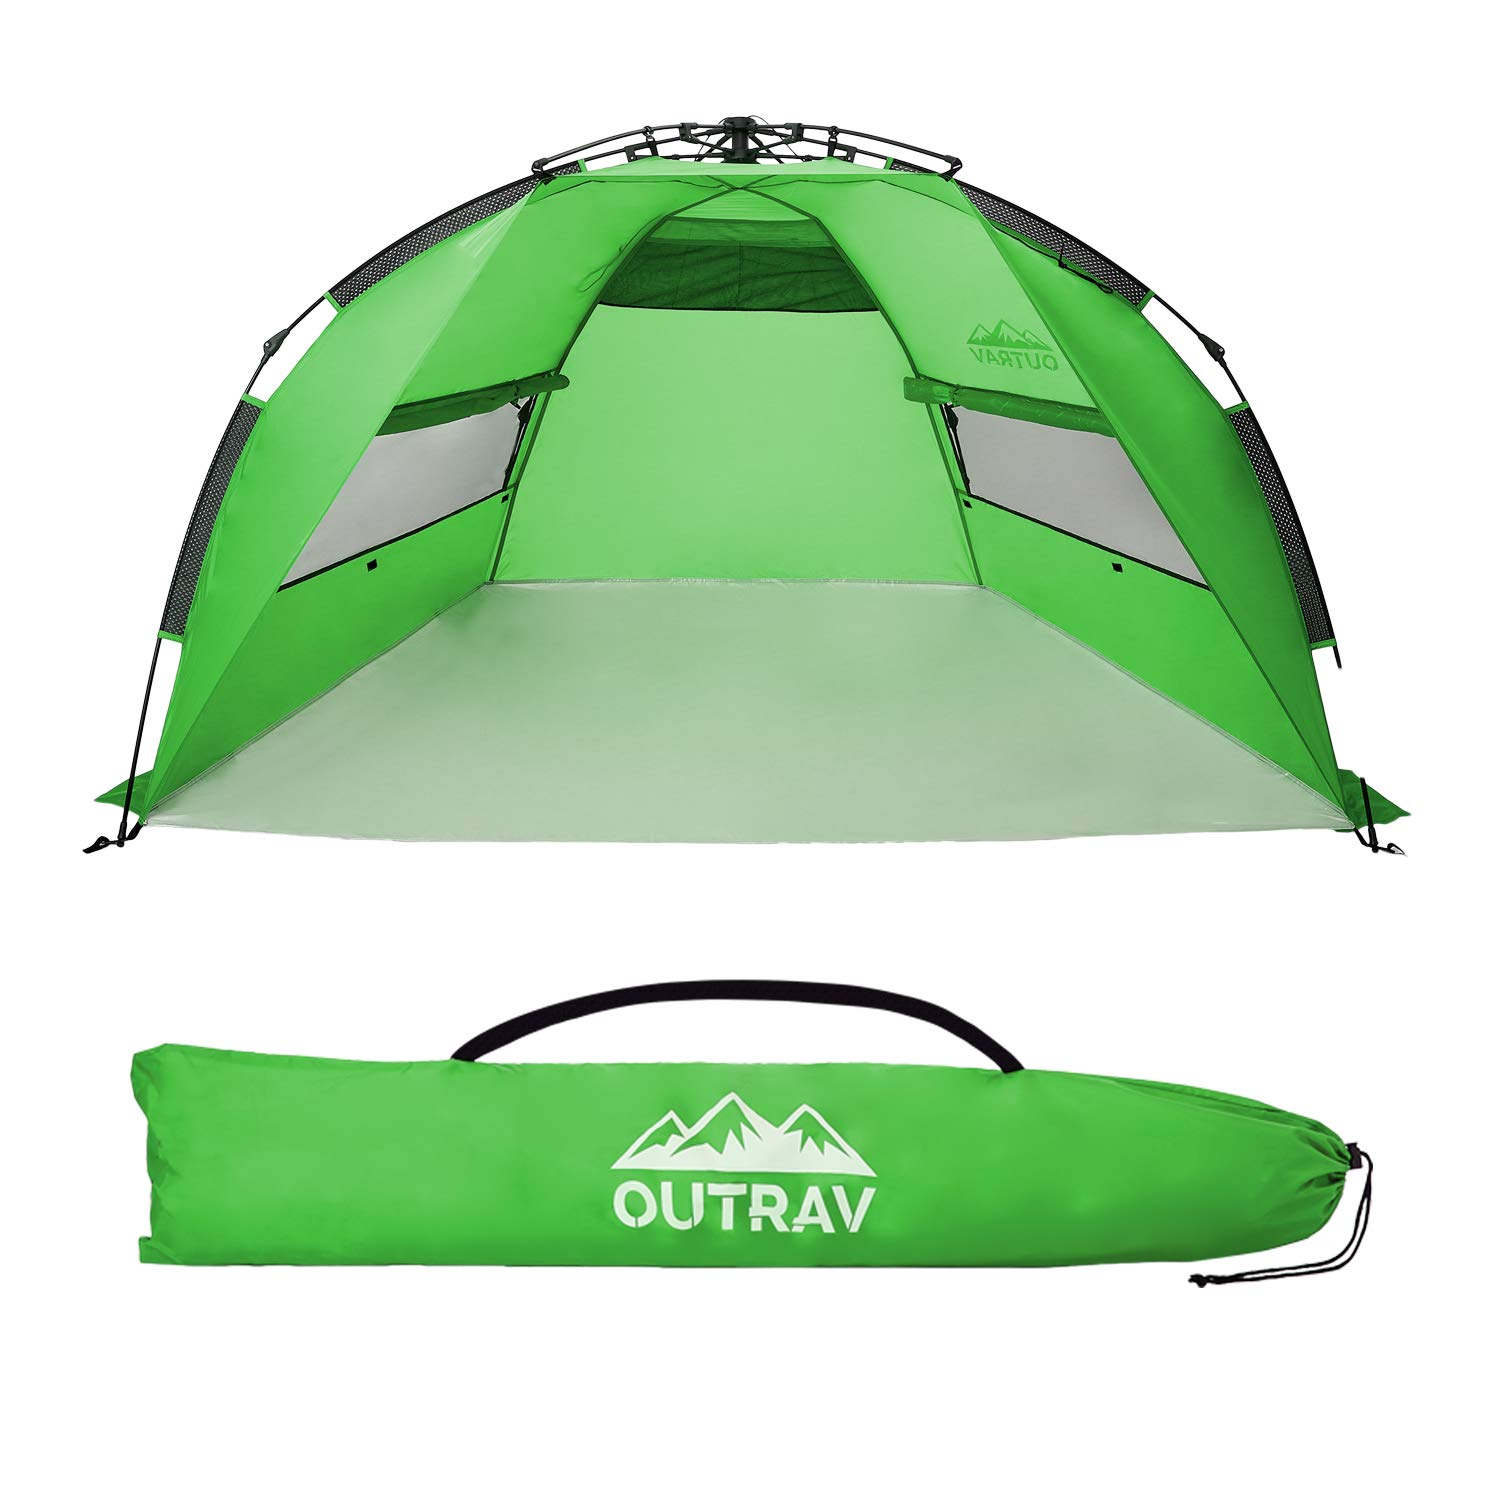 Outrav Pop Up Beach Tent - Quick and Easy Set Up, Family Size, Portable Sun and Water Shelter and Shade Canopy - for Fishing, Camping, Hiking and Outdoor Activities (Green) by Outrav